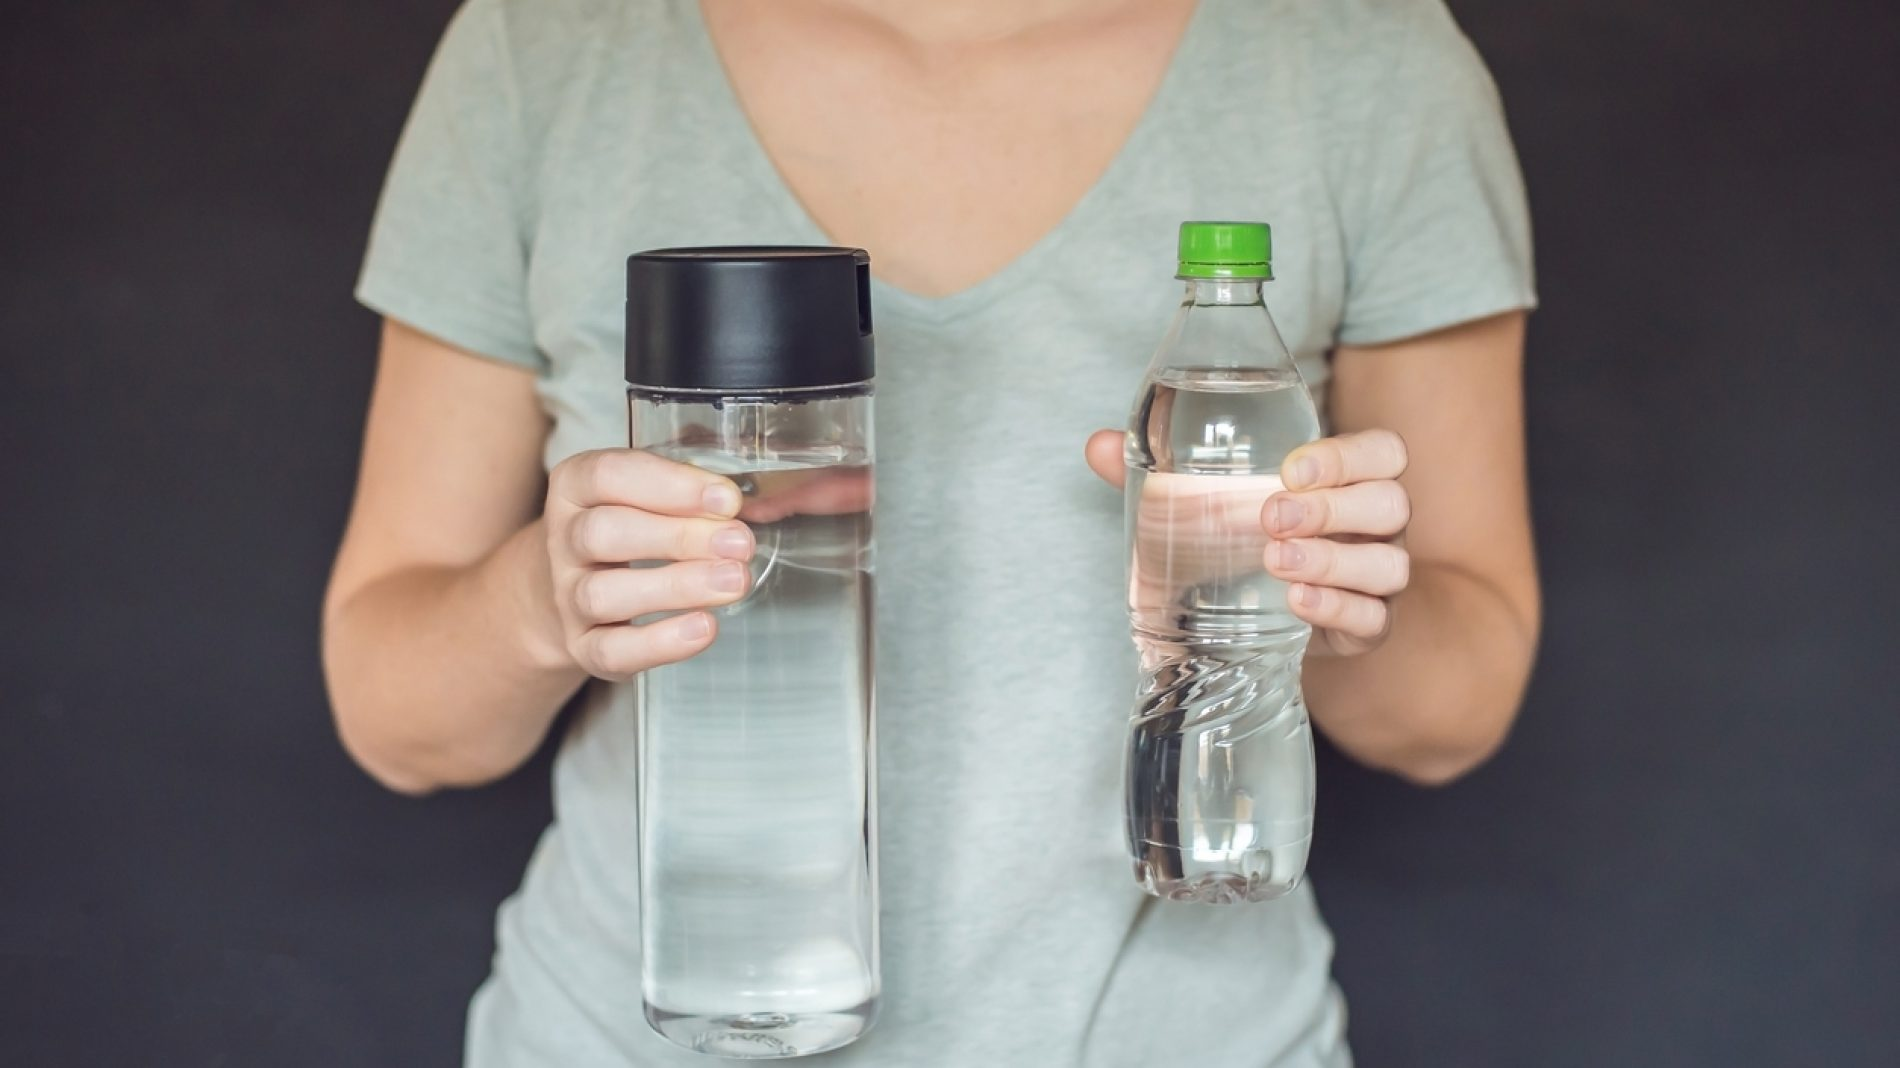 Zero waste concept. Use a plastic bottle or a glass bottle. Zero waste, green and conscious lifestyle concept. Reusable on the go drink container ideas.